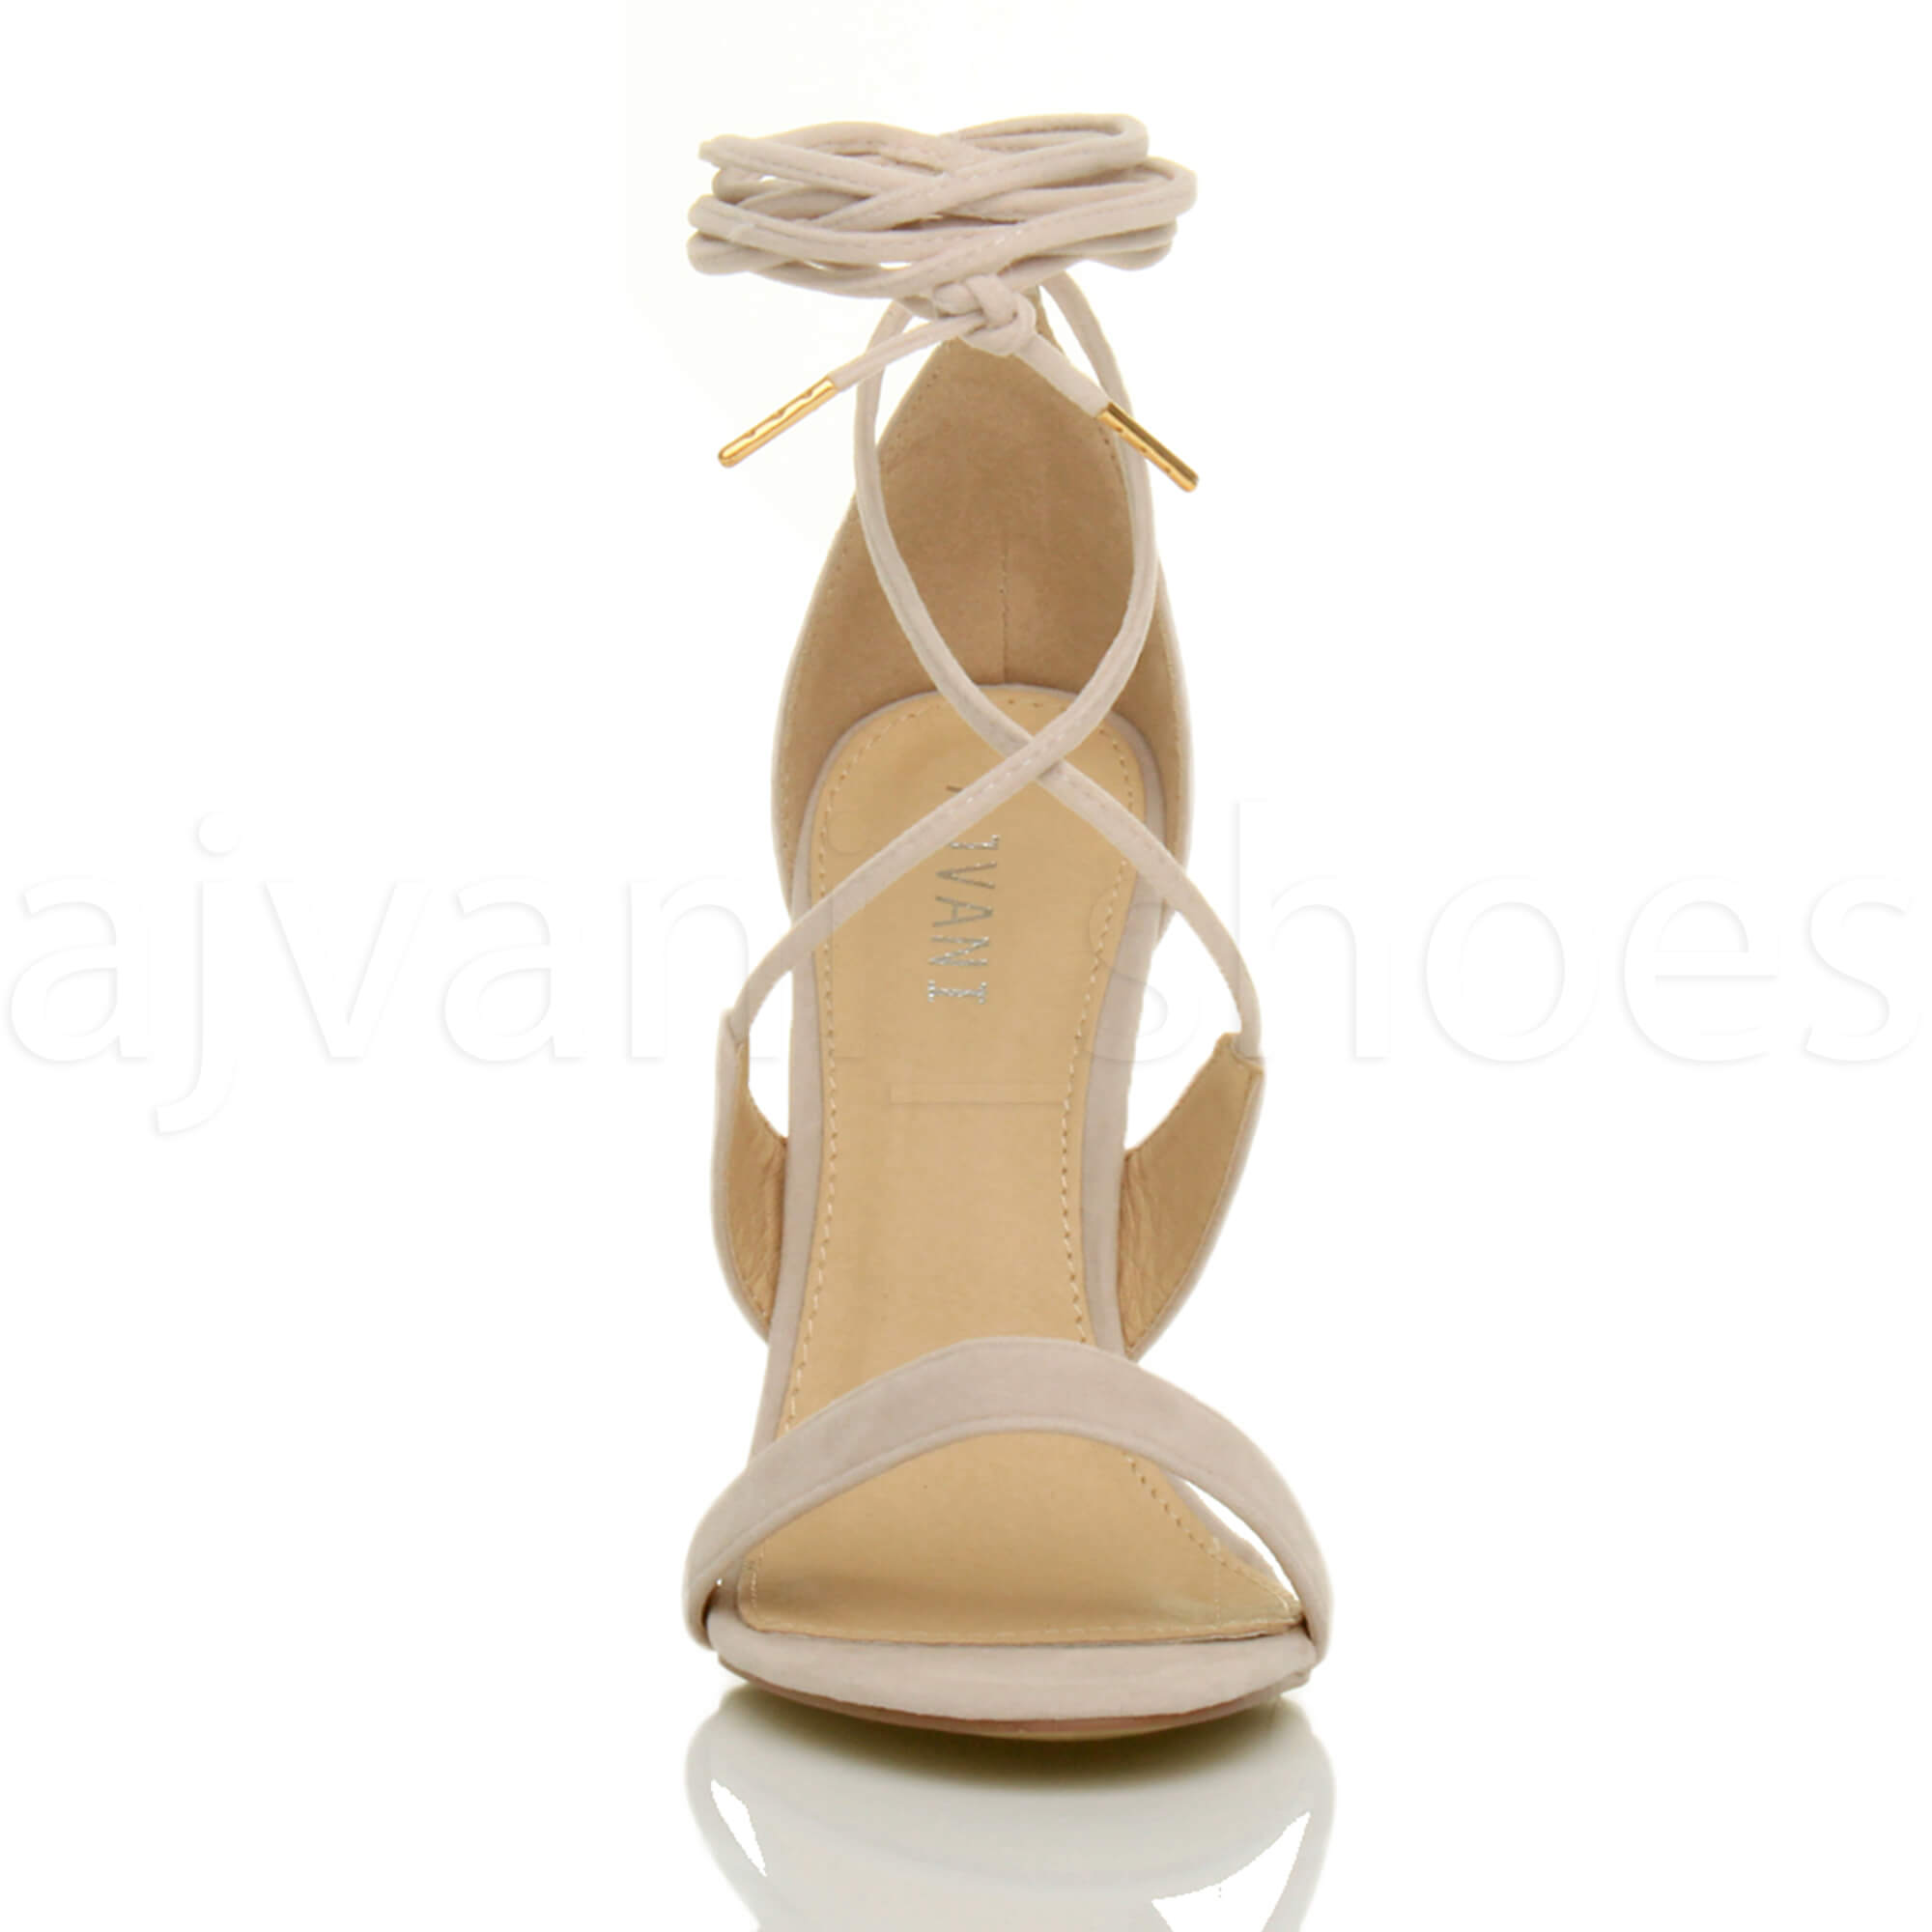 WOMENS-LADIES-HIGH-HEEL-BARELY-THERE-STRAPPY-LACE-TIE-UP-SANDALS-SHOES-SIZE thumbnail 43